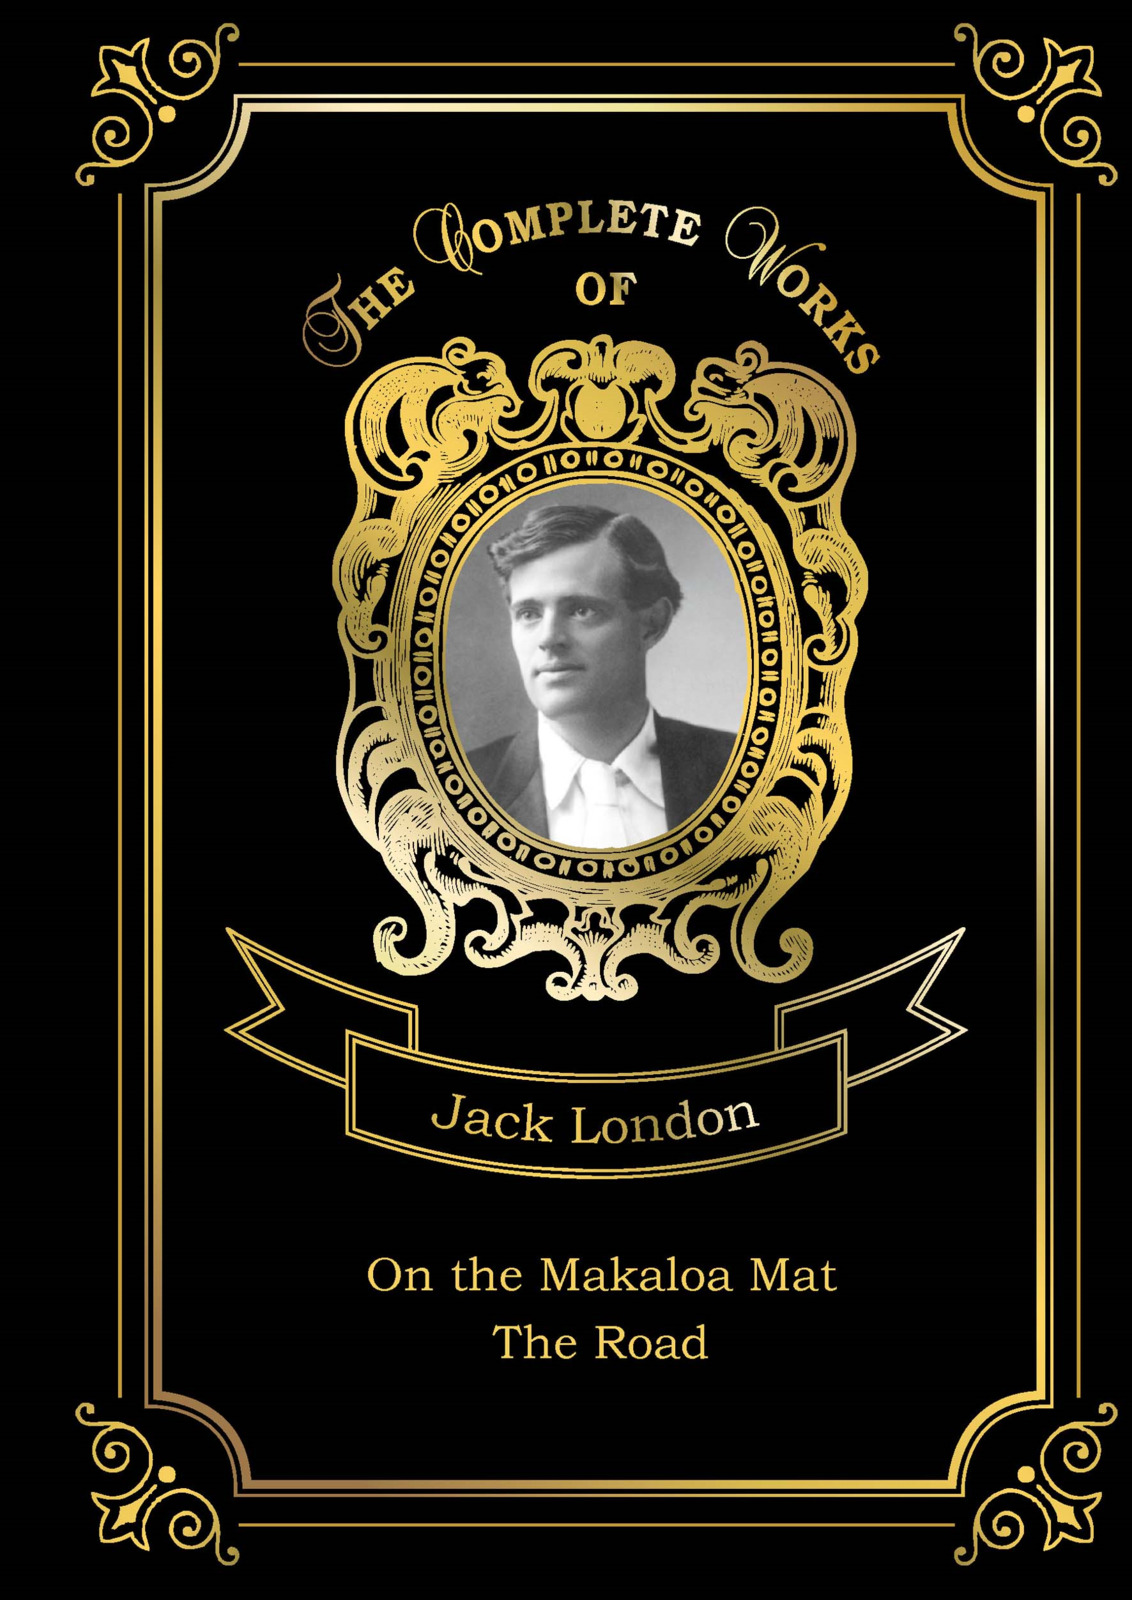 Jack London On the Makaloa Mat and The Road